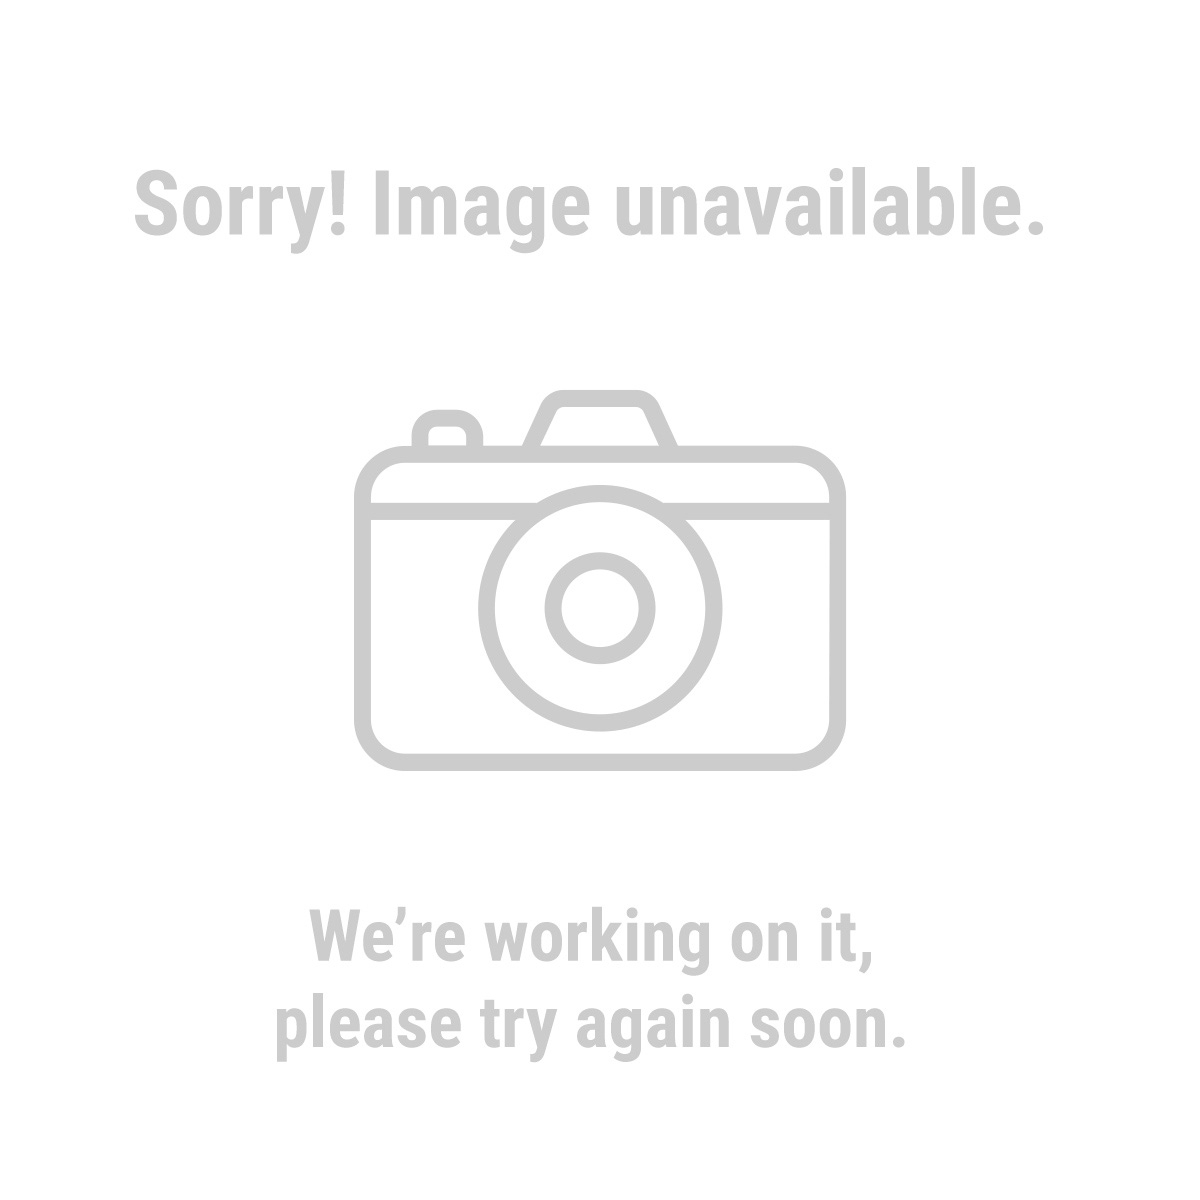 Western Safety 94785 2 Piece Respirator Masks